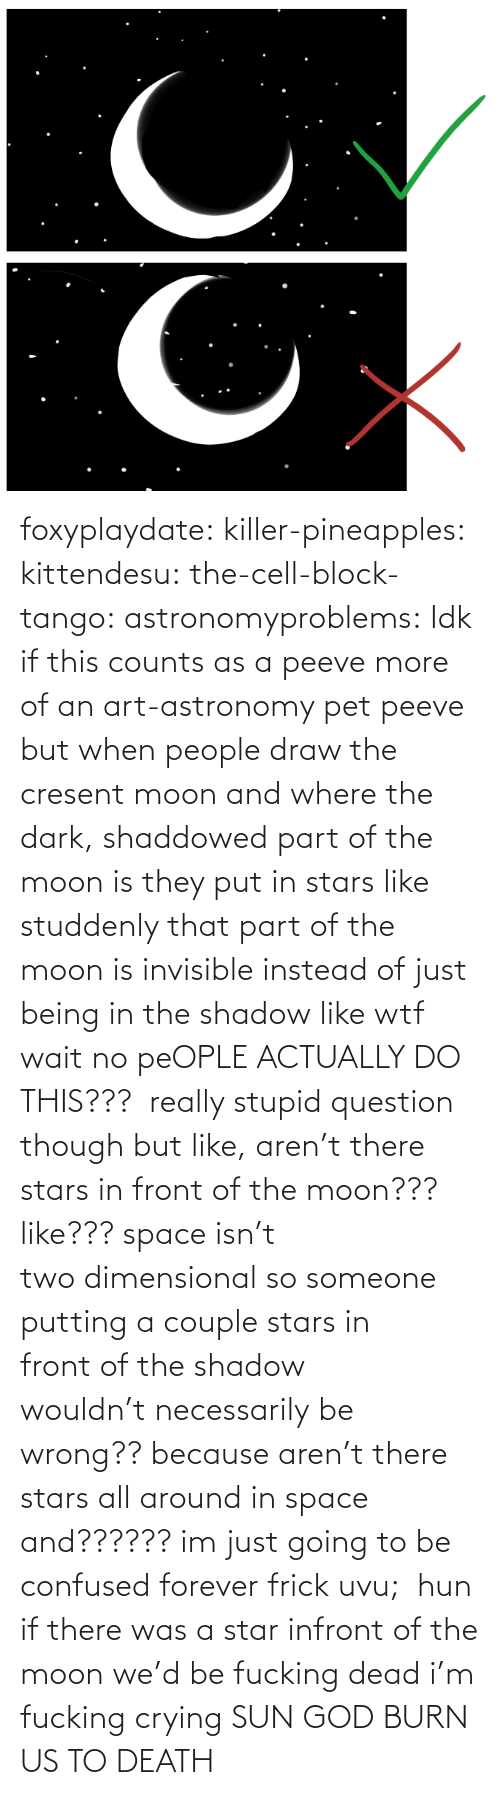 Frick: foxyplaydate: killer-pineapples:  kittendesu:  the-cell-block-tango:  astronomyproblems:  Idk if this counts as a peeve more of an art-astronomy pet peeve but when people draw the cresent moon and where the dark, shaddowed part of the moon is they put in stars like studdenly that part of the moon is invisible instead of just being in the shadow like wtf  wait no peOPLE ACTUALLY DO THIS???   really stupid question though but like, aren't there stars in front of the moon??? like??? space isn't two dimensional so someone putting a couple stars in front of the shadow wouldn't necessarily be wrong?? because aren't there stars all around in space and?????? im just going to be confused forever frick uvu;   hun if there was a star infront of the moon we'd be fucking dead  i'm fucking crying    SUN GOD BURN US TO DEATH